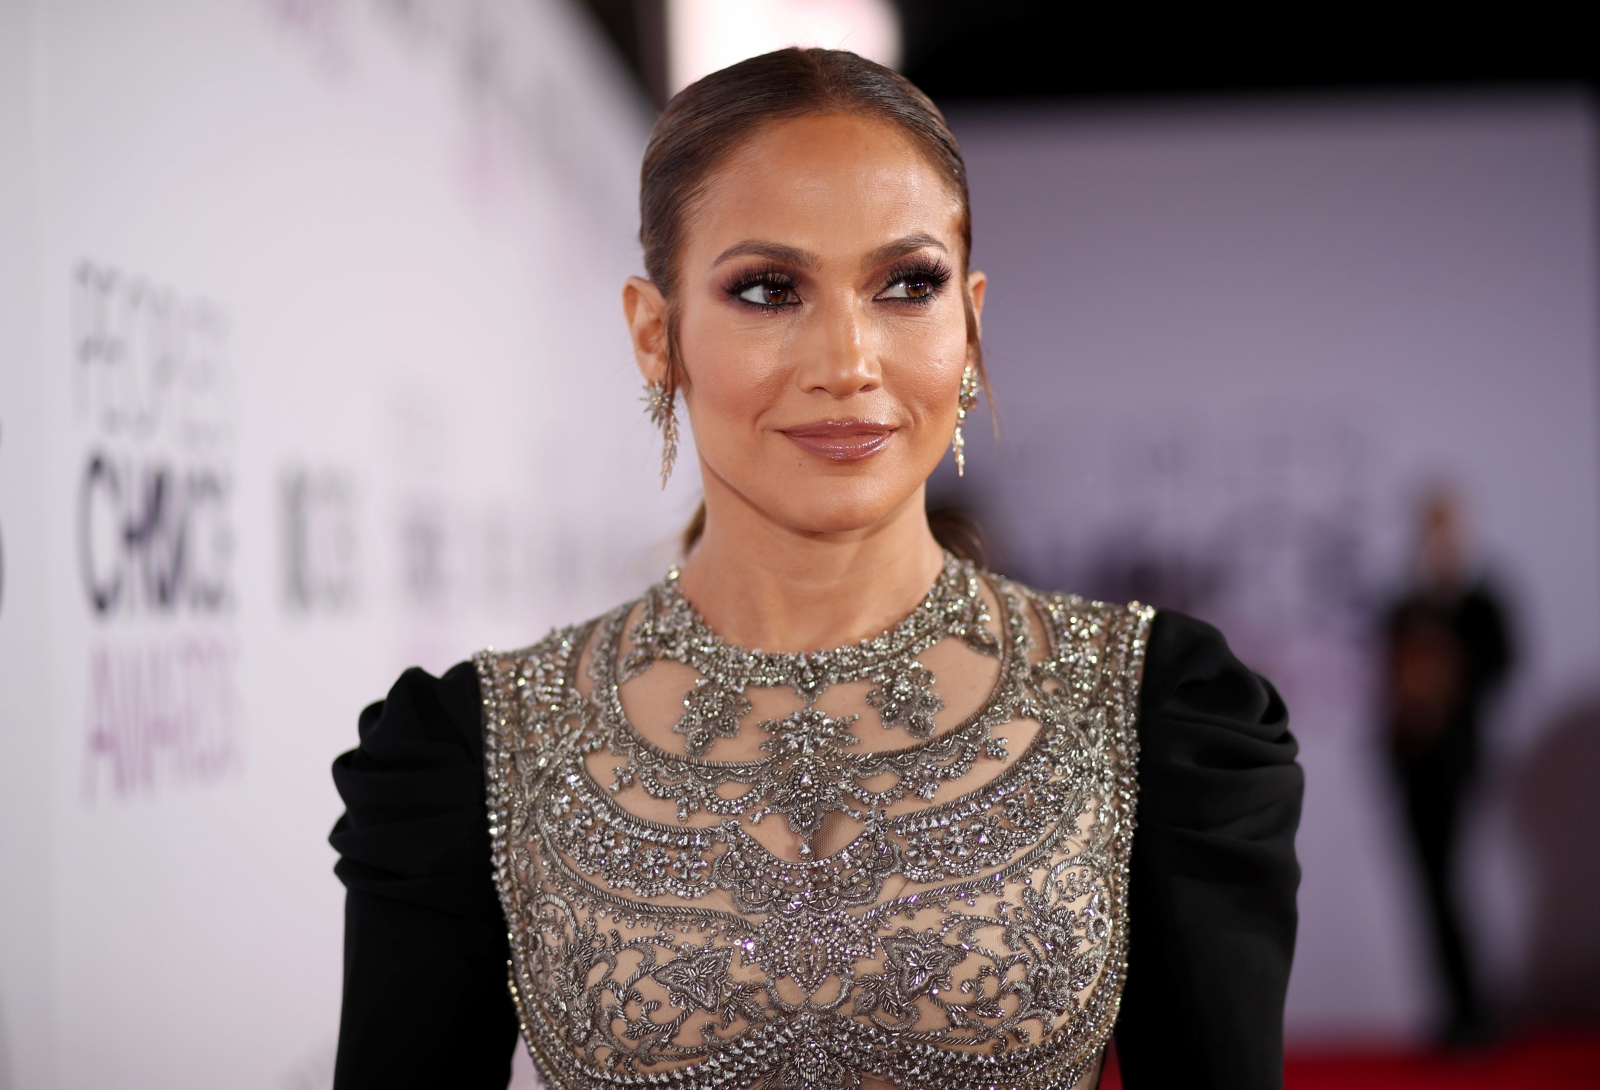 Drake who? Jennifer Lopez, 47, looks vibrant leaving